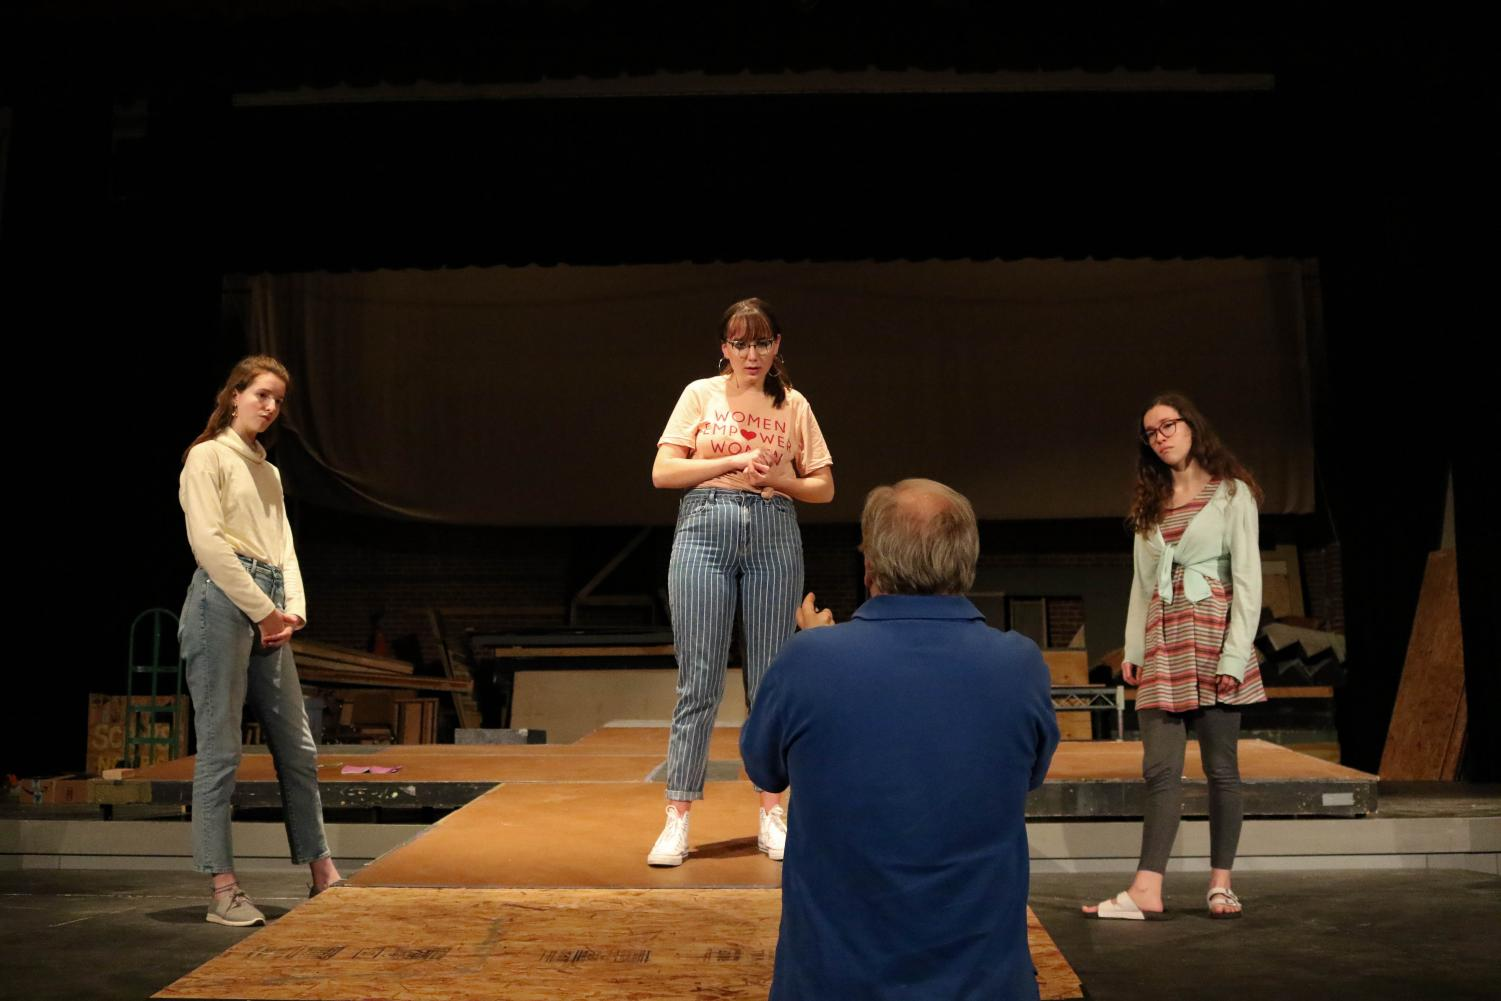 Left to Right: Sophomores Isabel Ashley and Emory Rodda and senior Alyssa Glover absorb notes from Associate Professor of Theatre Tom Heiman. The play